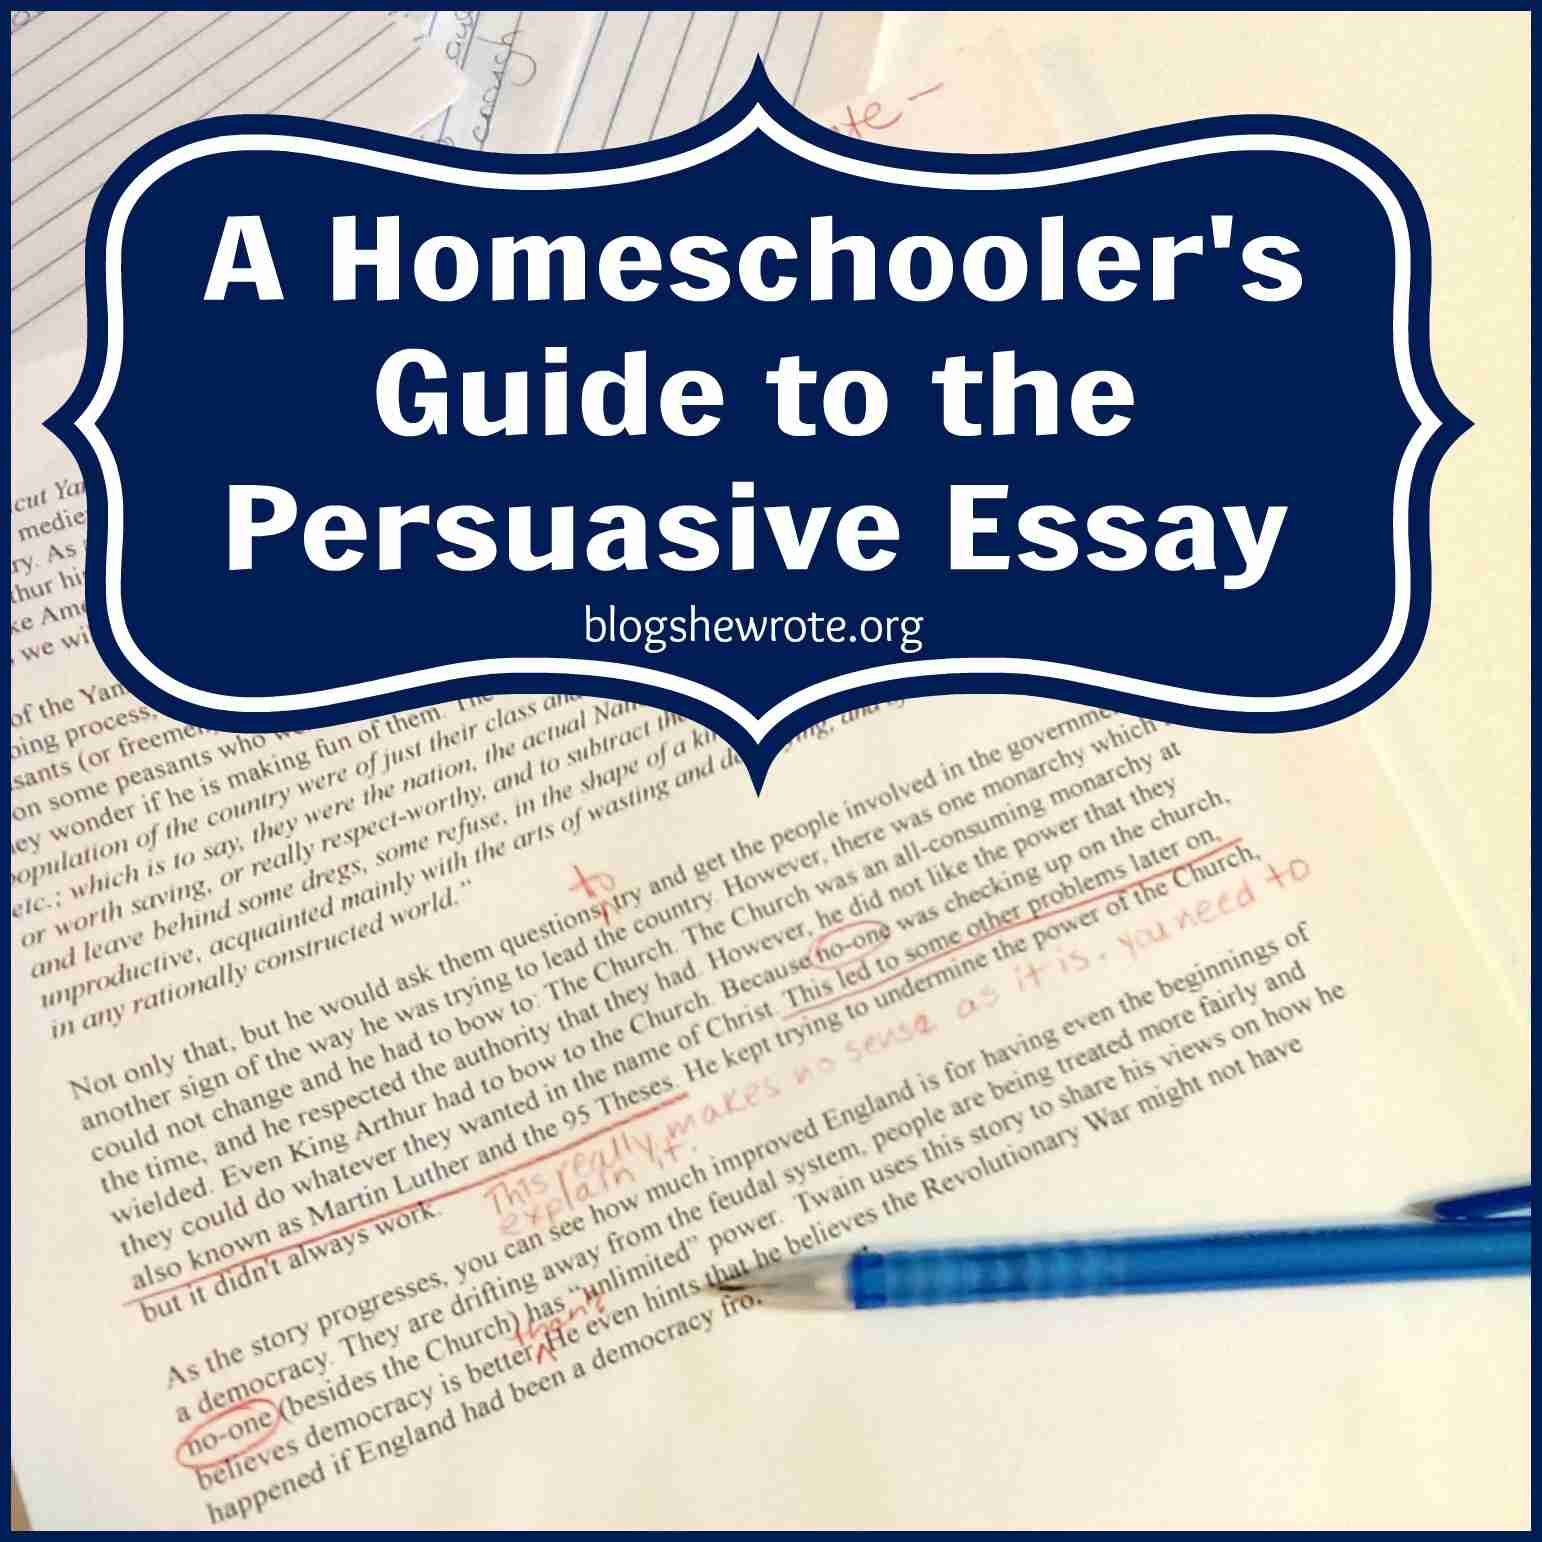 How To Write An Essay Thesis Blog She Wrote A Homeschoolers Guide To The Persuasive Essay Buy An Essay Paper also Environmental Science Essays A Homeschoolers Guide To The Persuasive Essay  Blog She Wrote Apa Format Essay Example Paper